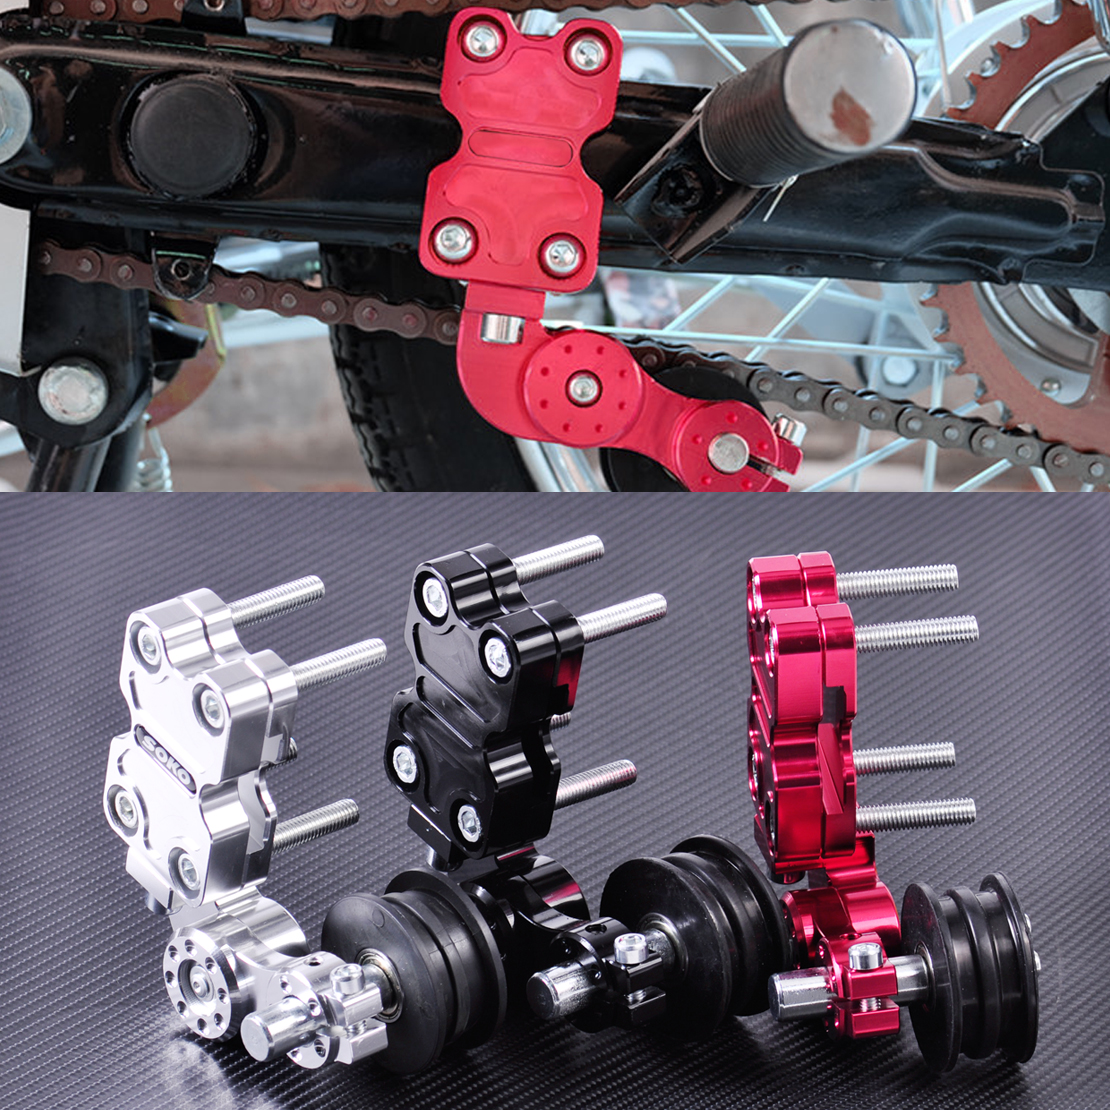 CITALL Adjustable Aluminum Chain Tensioner Bolt on Roller Motocross for Motorcycle Dirt Street Bike ATVs Banshee Chopper motorcycle adjustable aluminum chain tensioner adjuster bolt on roller motocross dirt street bike atv for honda kawasaki yamaha